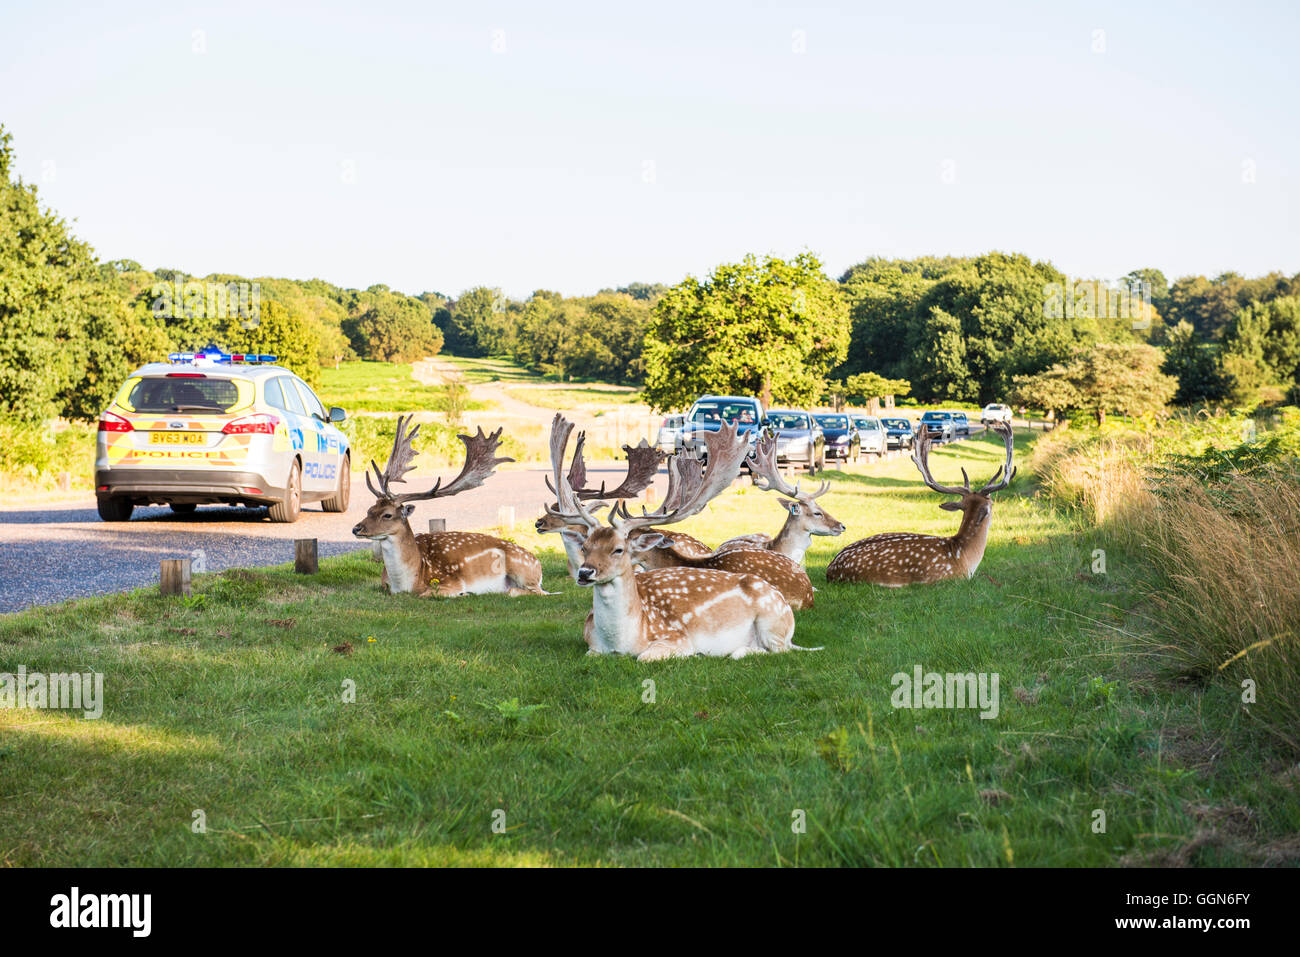 Richmond Park/London, UK, 6th Aug, 2015. Deer in Richmond park calm in the afternoon sun despite heavy traffic congestion, - Stock Image